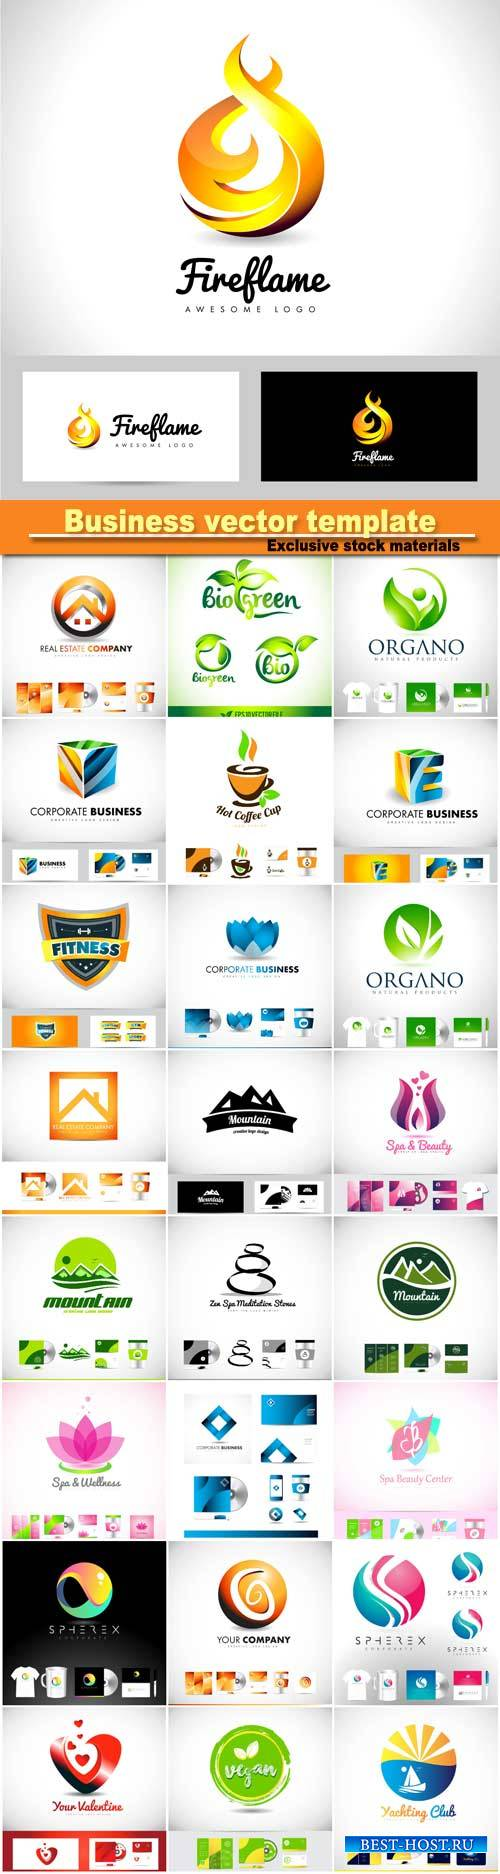 Vector logo icon, design template corporate identity